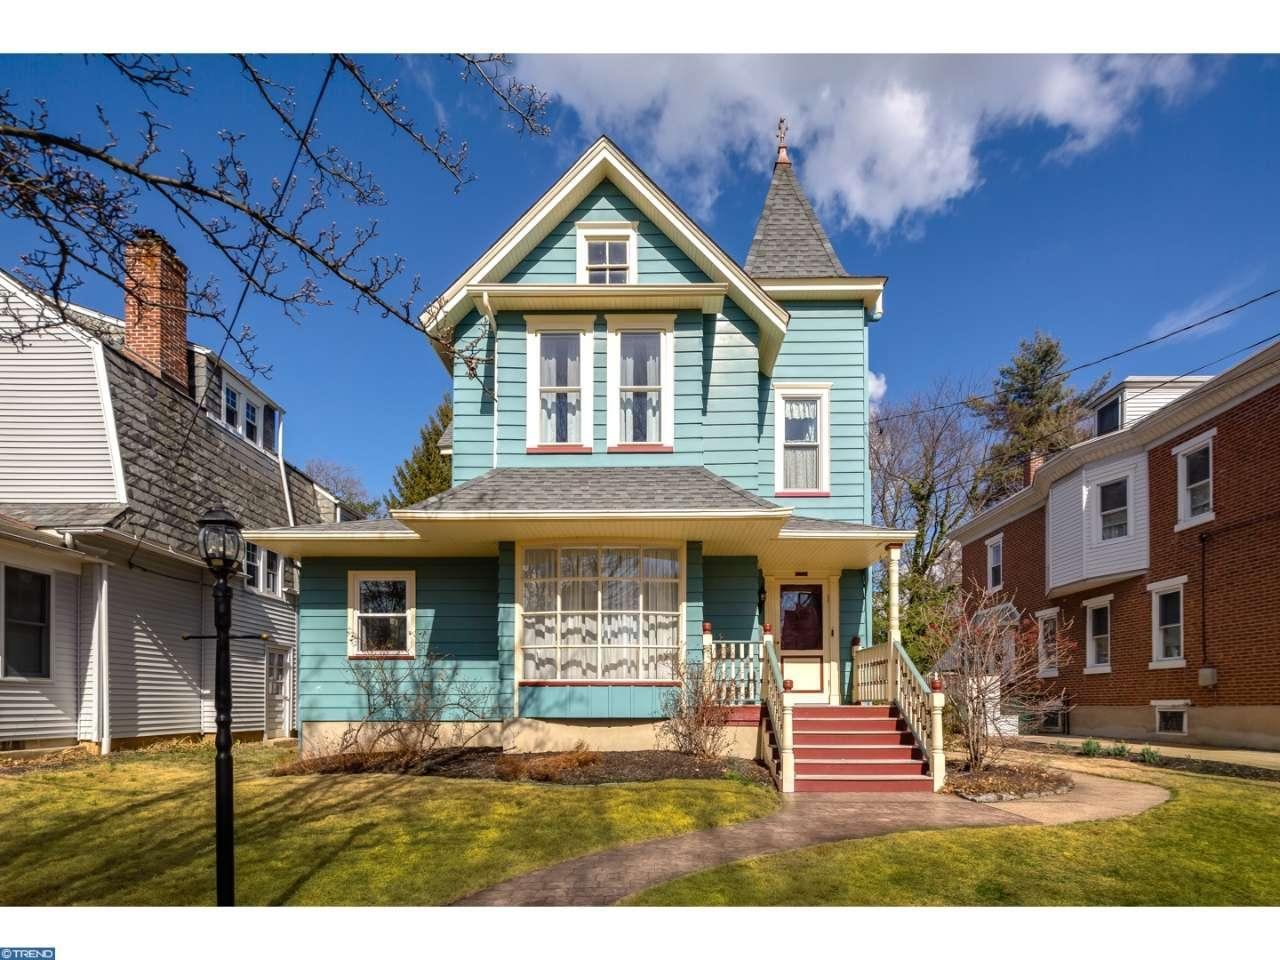 605 Stokes Ave Collingswood Nj 08108 Single Family Home